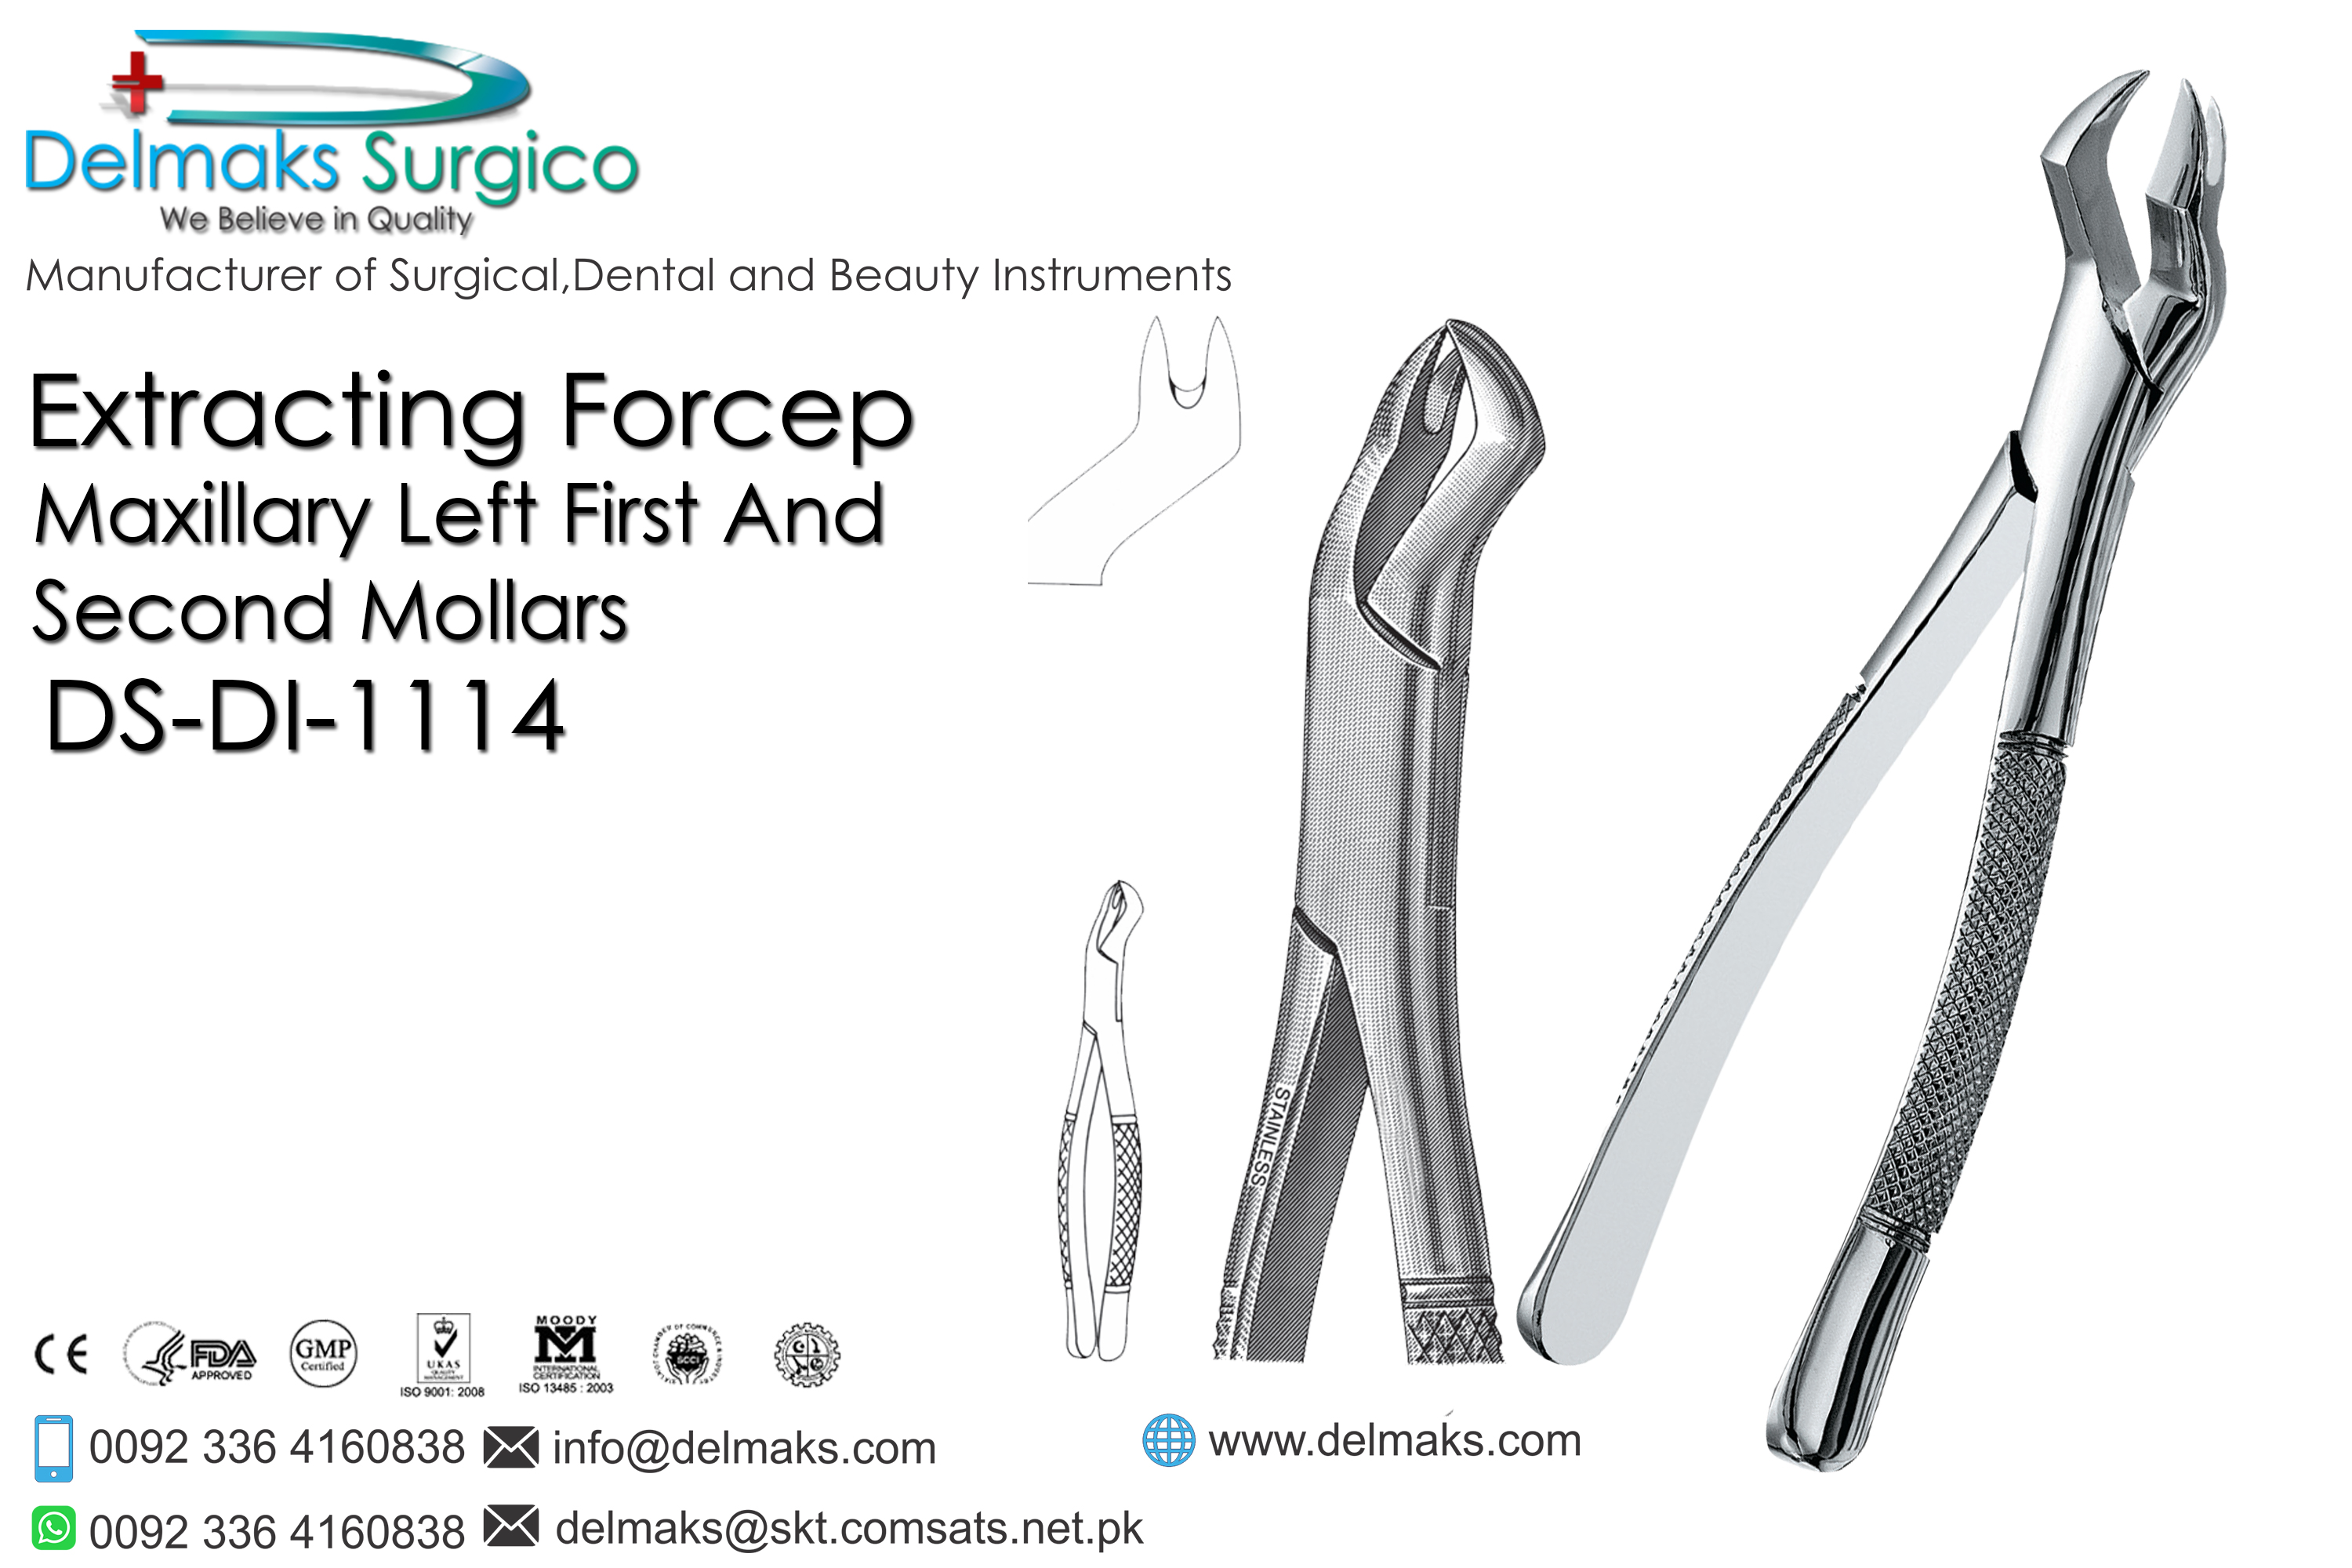 Extracting Forceps (Maxillary Left First And Second Mollars)-Oral and Maxillofacial Surgery Instruments-Dental Instruments-Delmaks Surgico